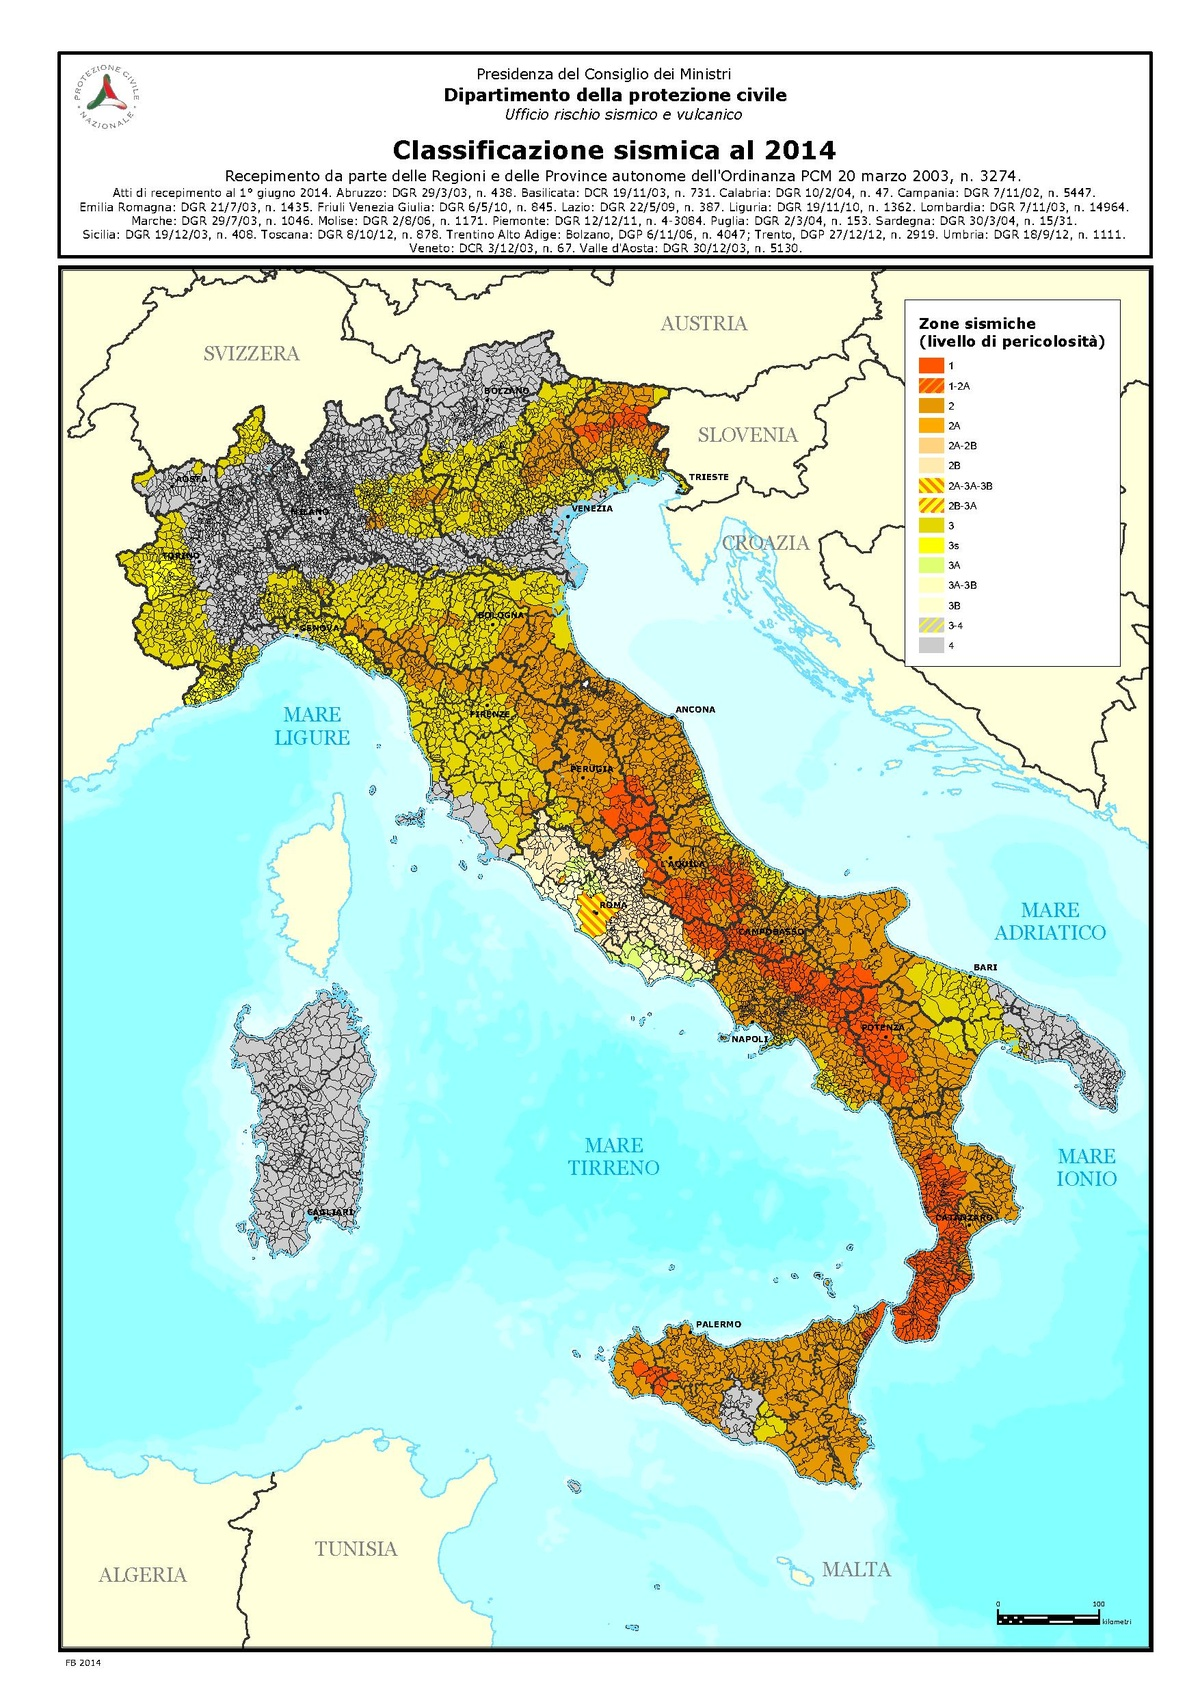 Cartina Sismica Italia Wikipedia.File Classificazione Sismica Italia 2014 Pdf Wikipedia